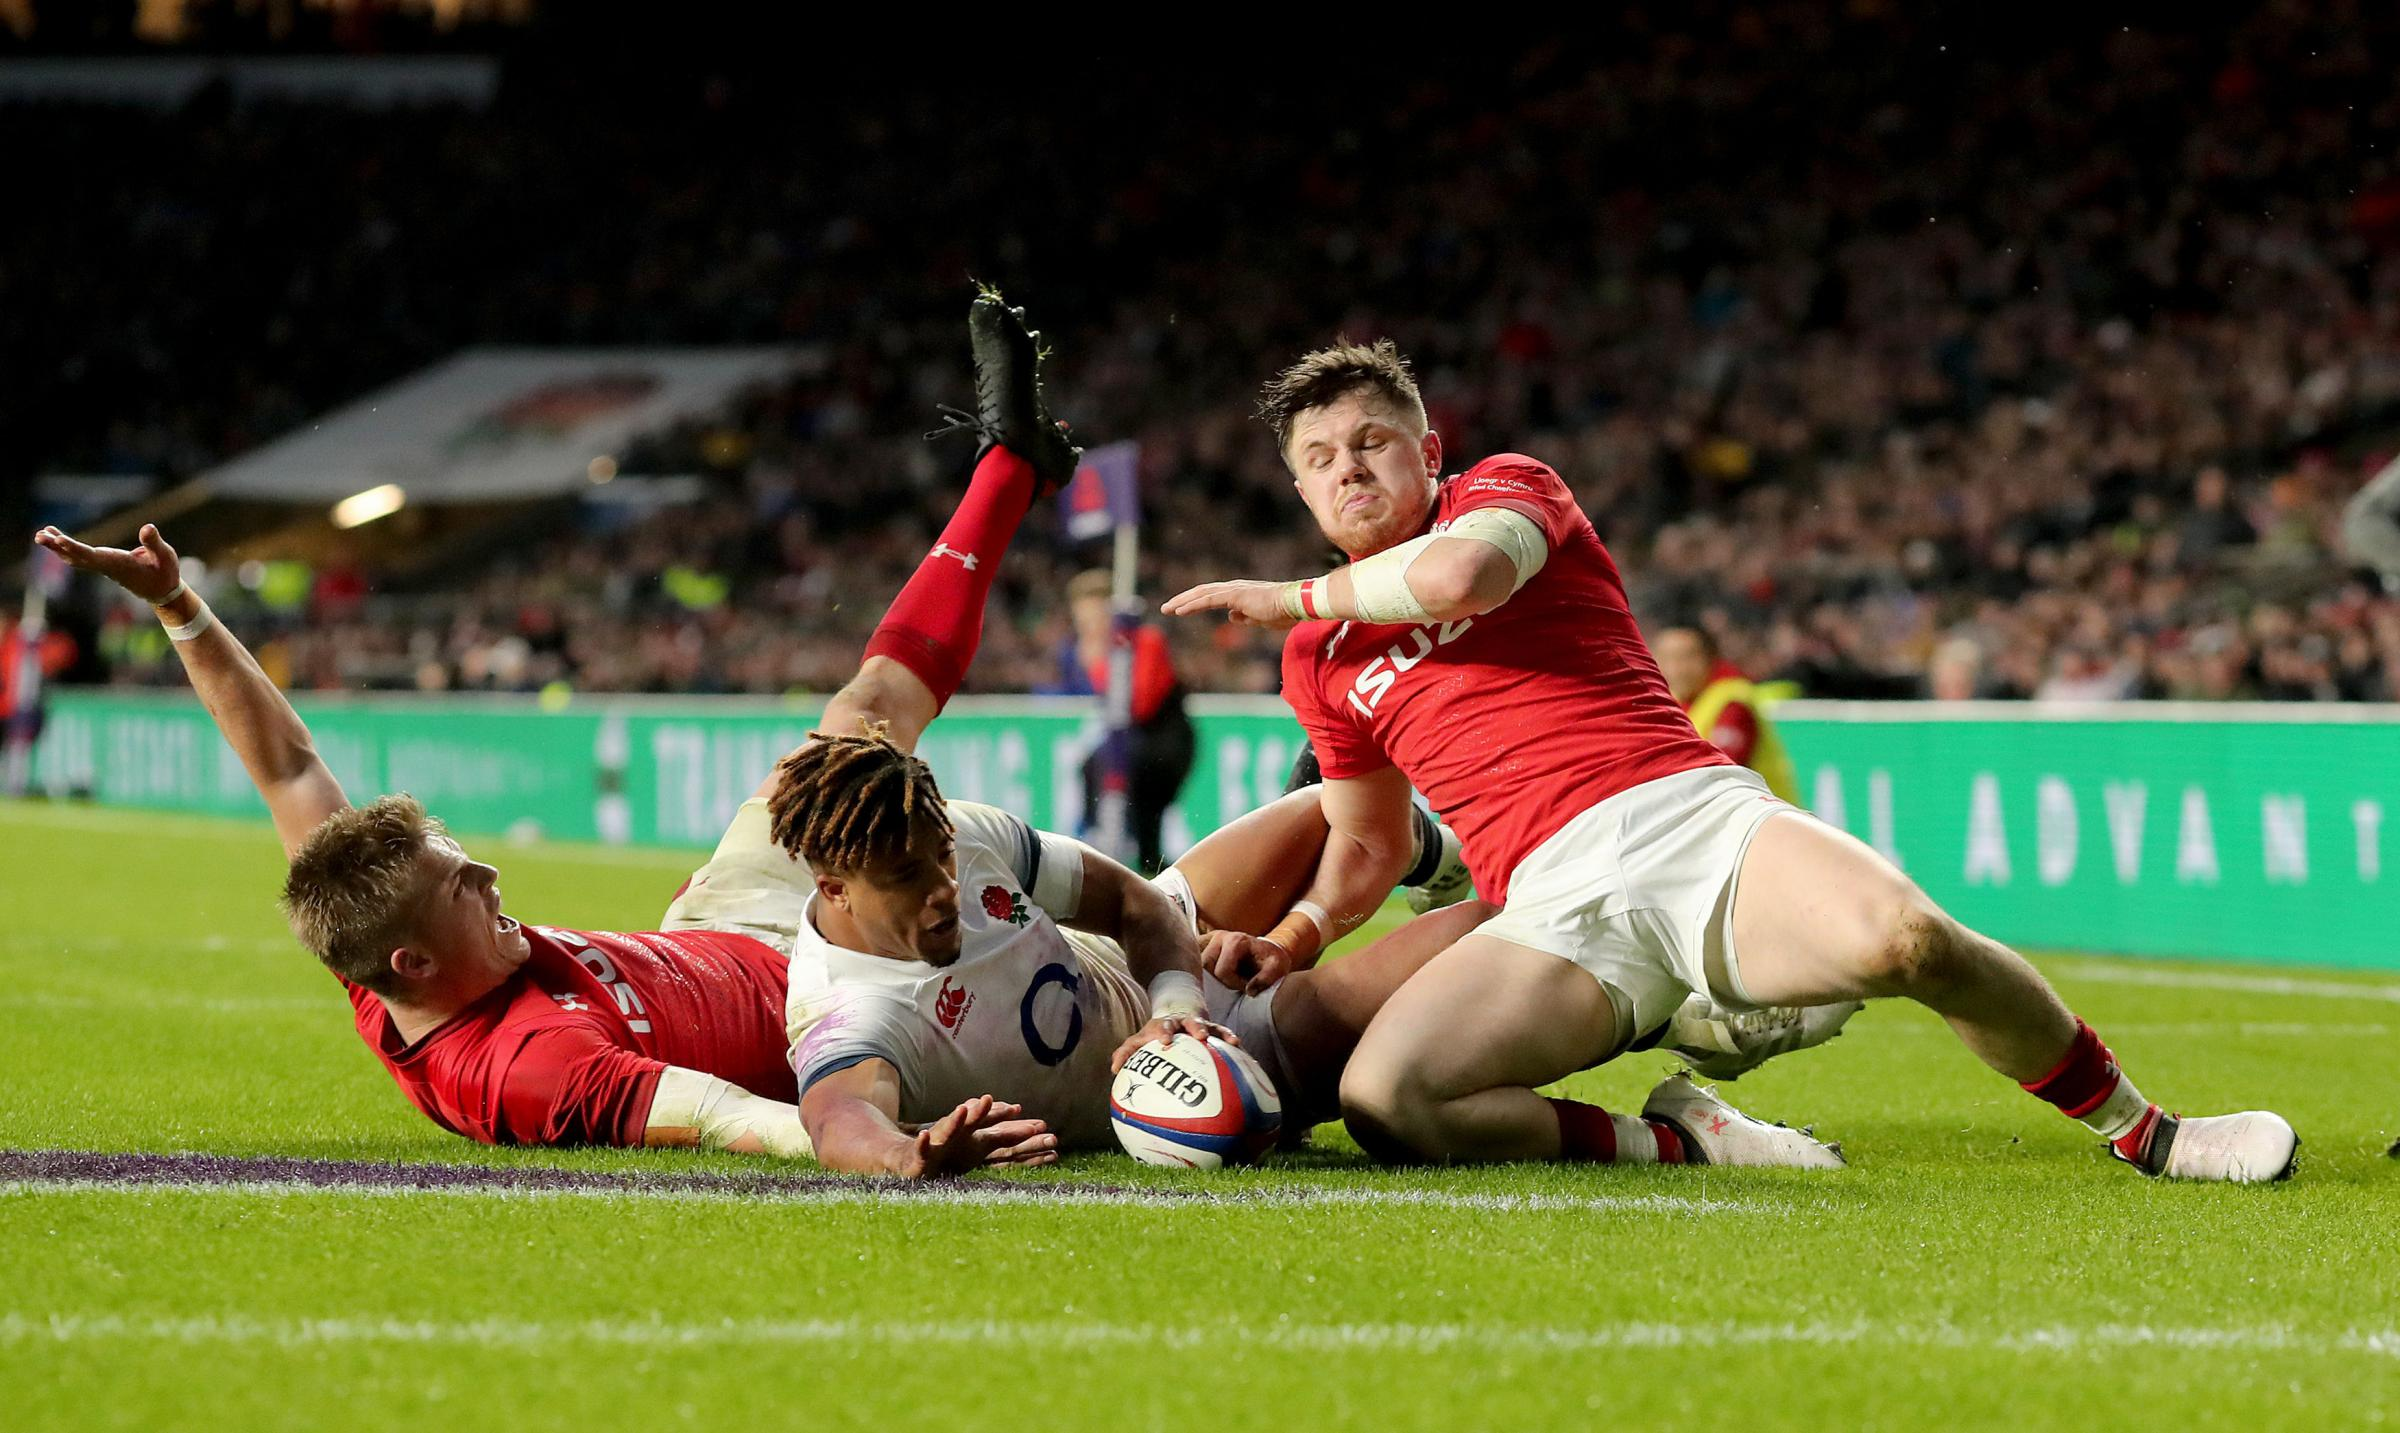 Wales' Gareth Anscombe (left) attempts a try but it is ruled out after a referral to the TMO  during the NatWest 6 Nations match at Twickenham Stadium, London. PRESS ASSOCIATION Photo. Picture date: Saturday February 10, 2018. See PA story RUGBYU Engl